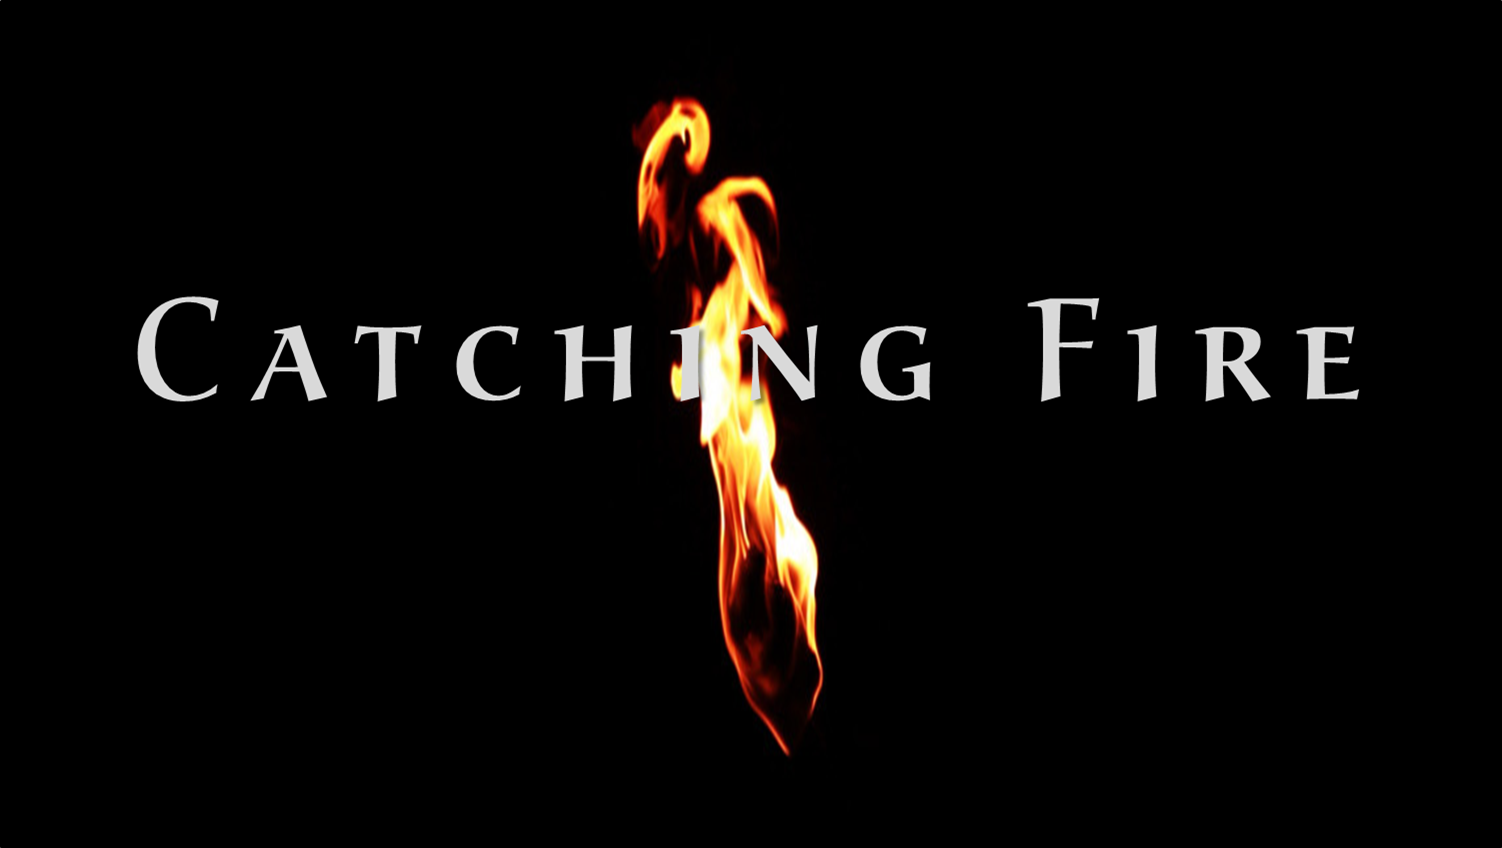 Catching Fire logo